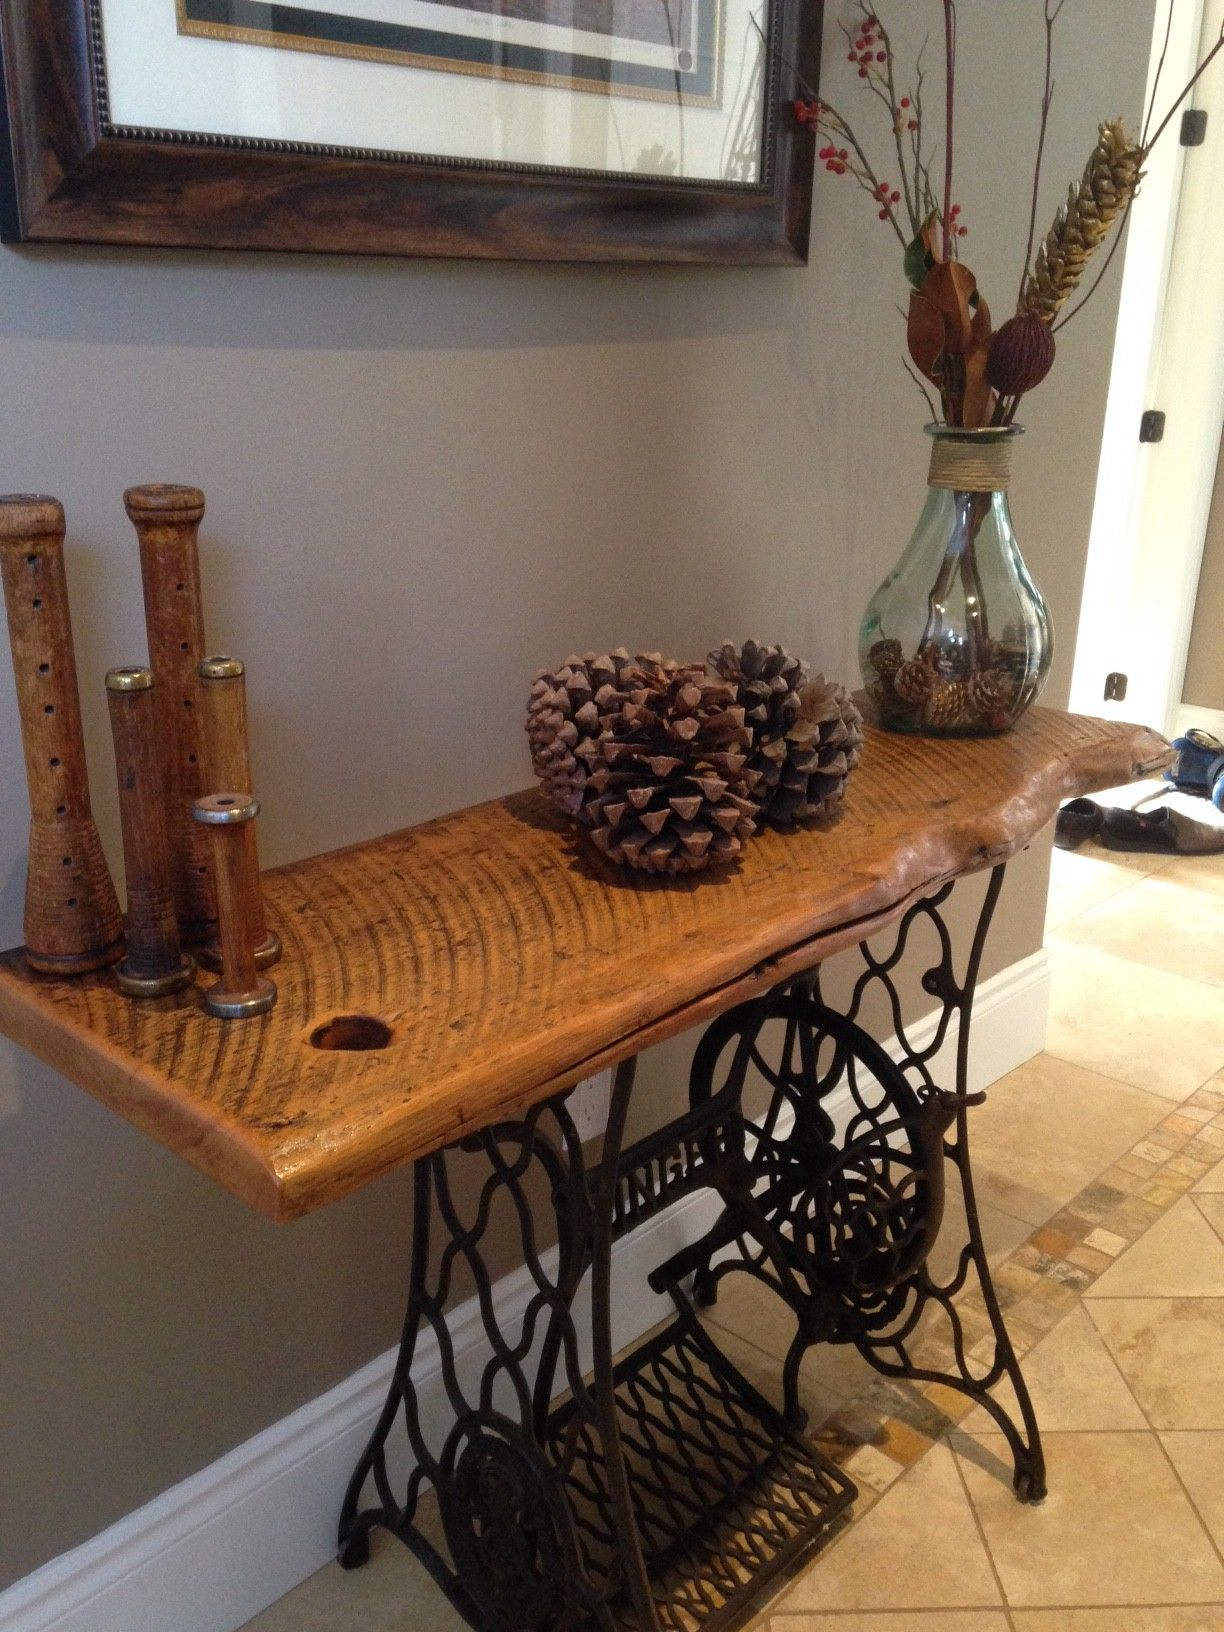 Hallway table made with Antique Singer Sewing table base and